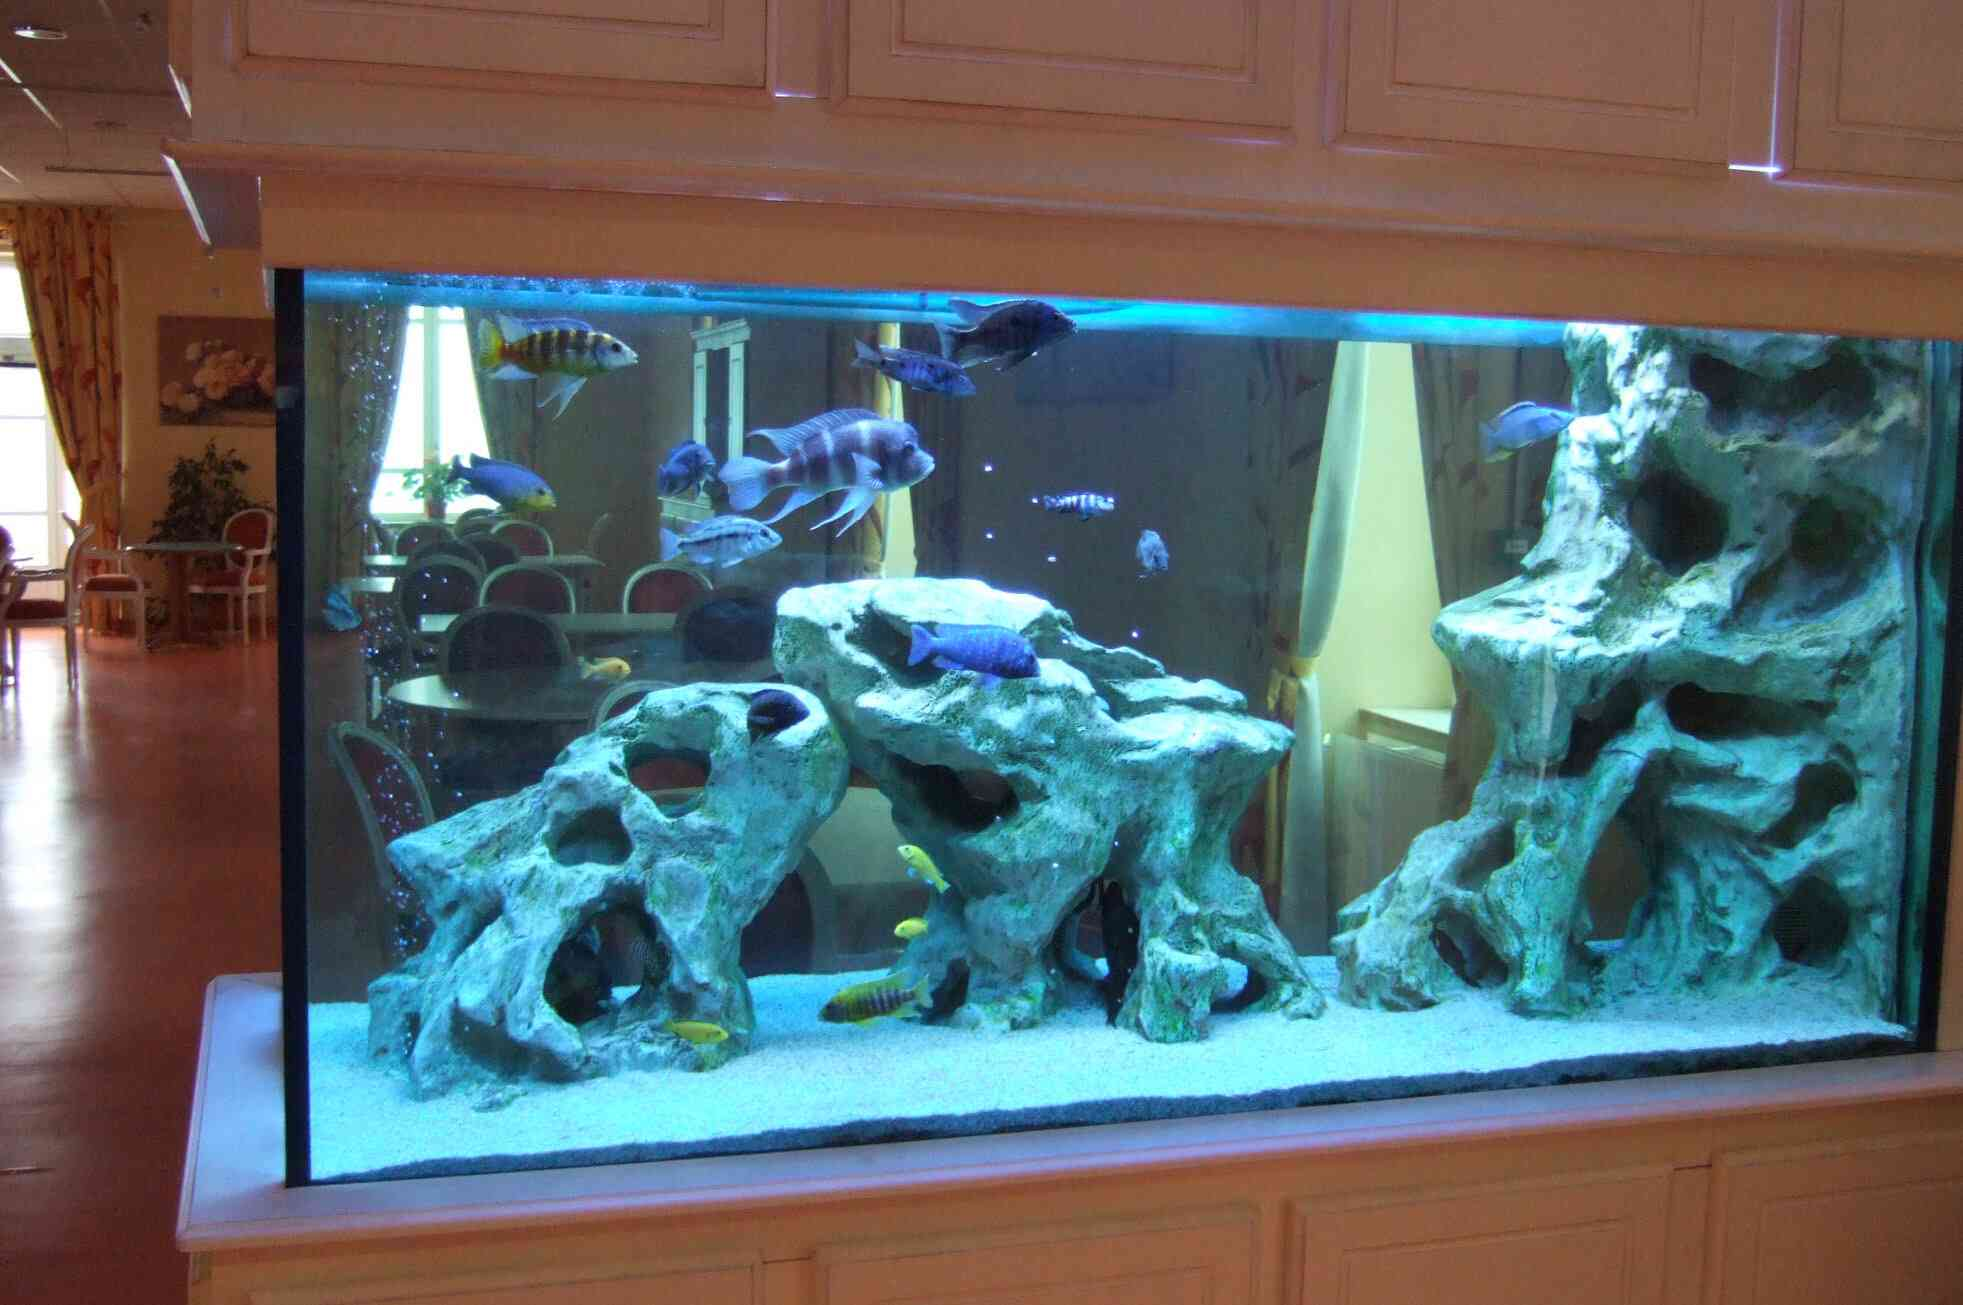 décoration aquarium moderne